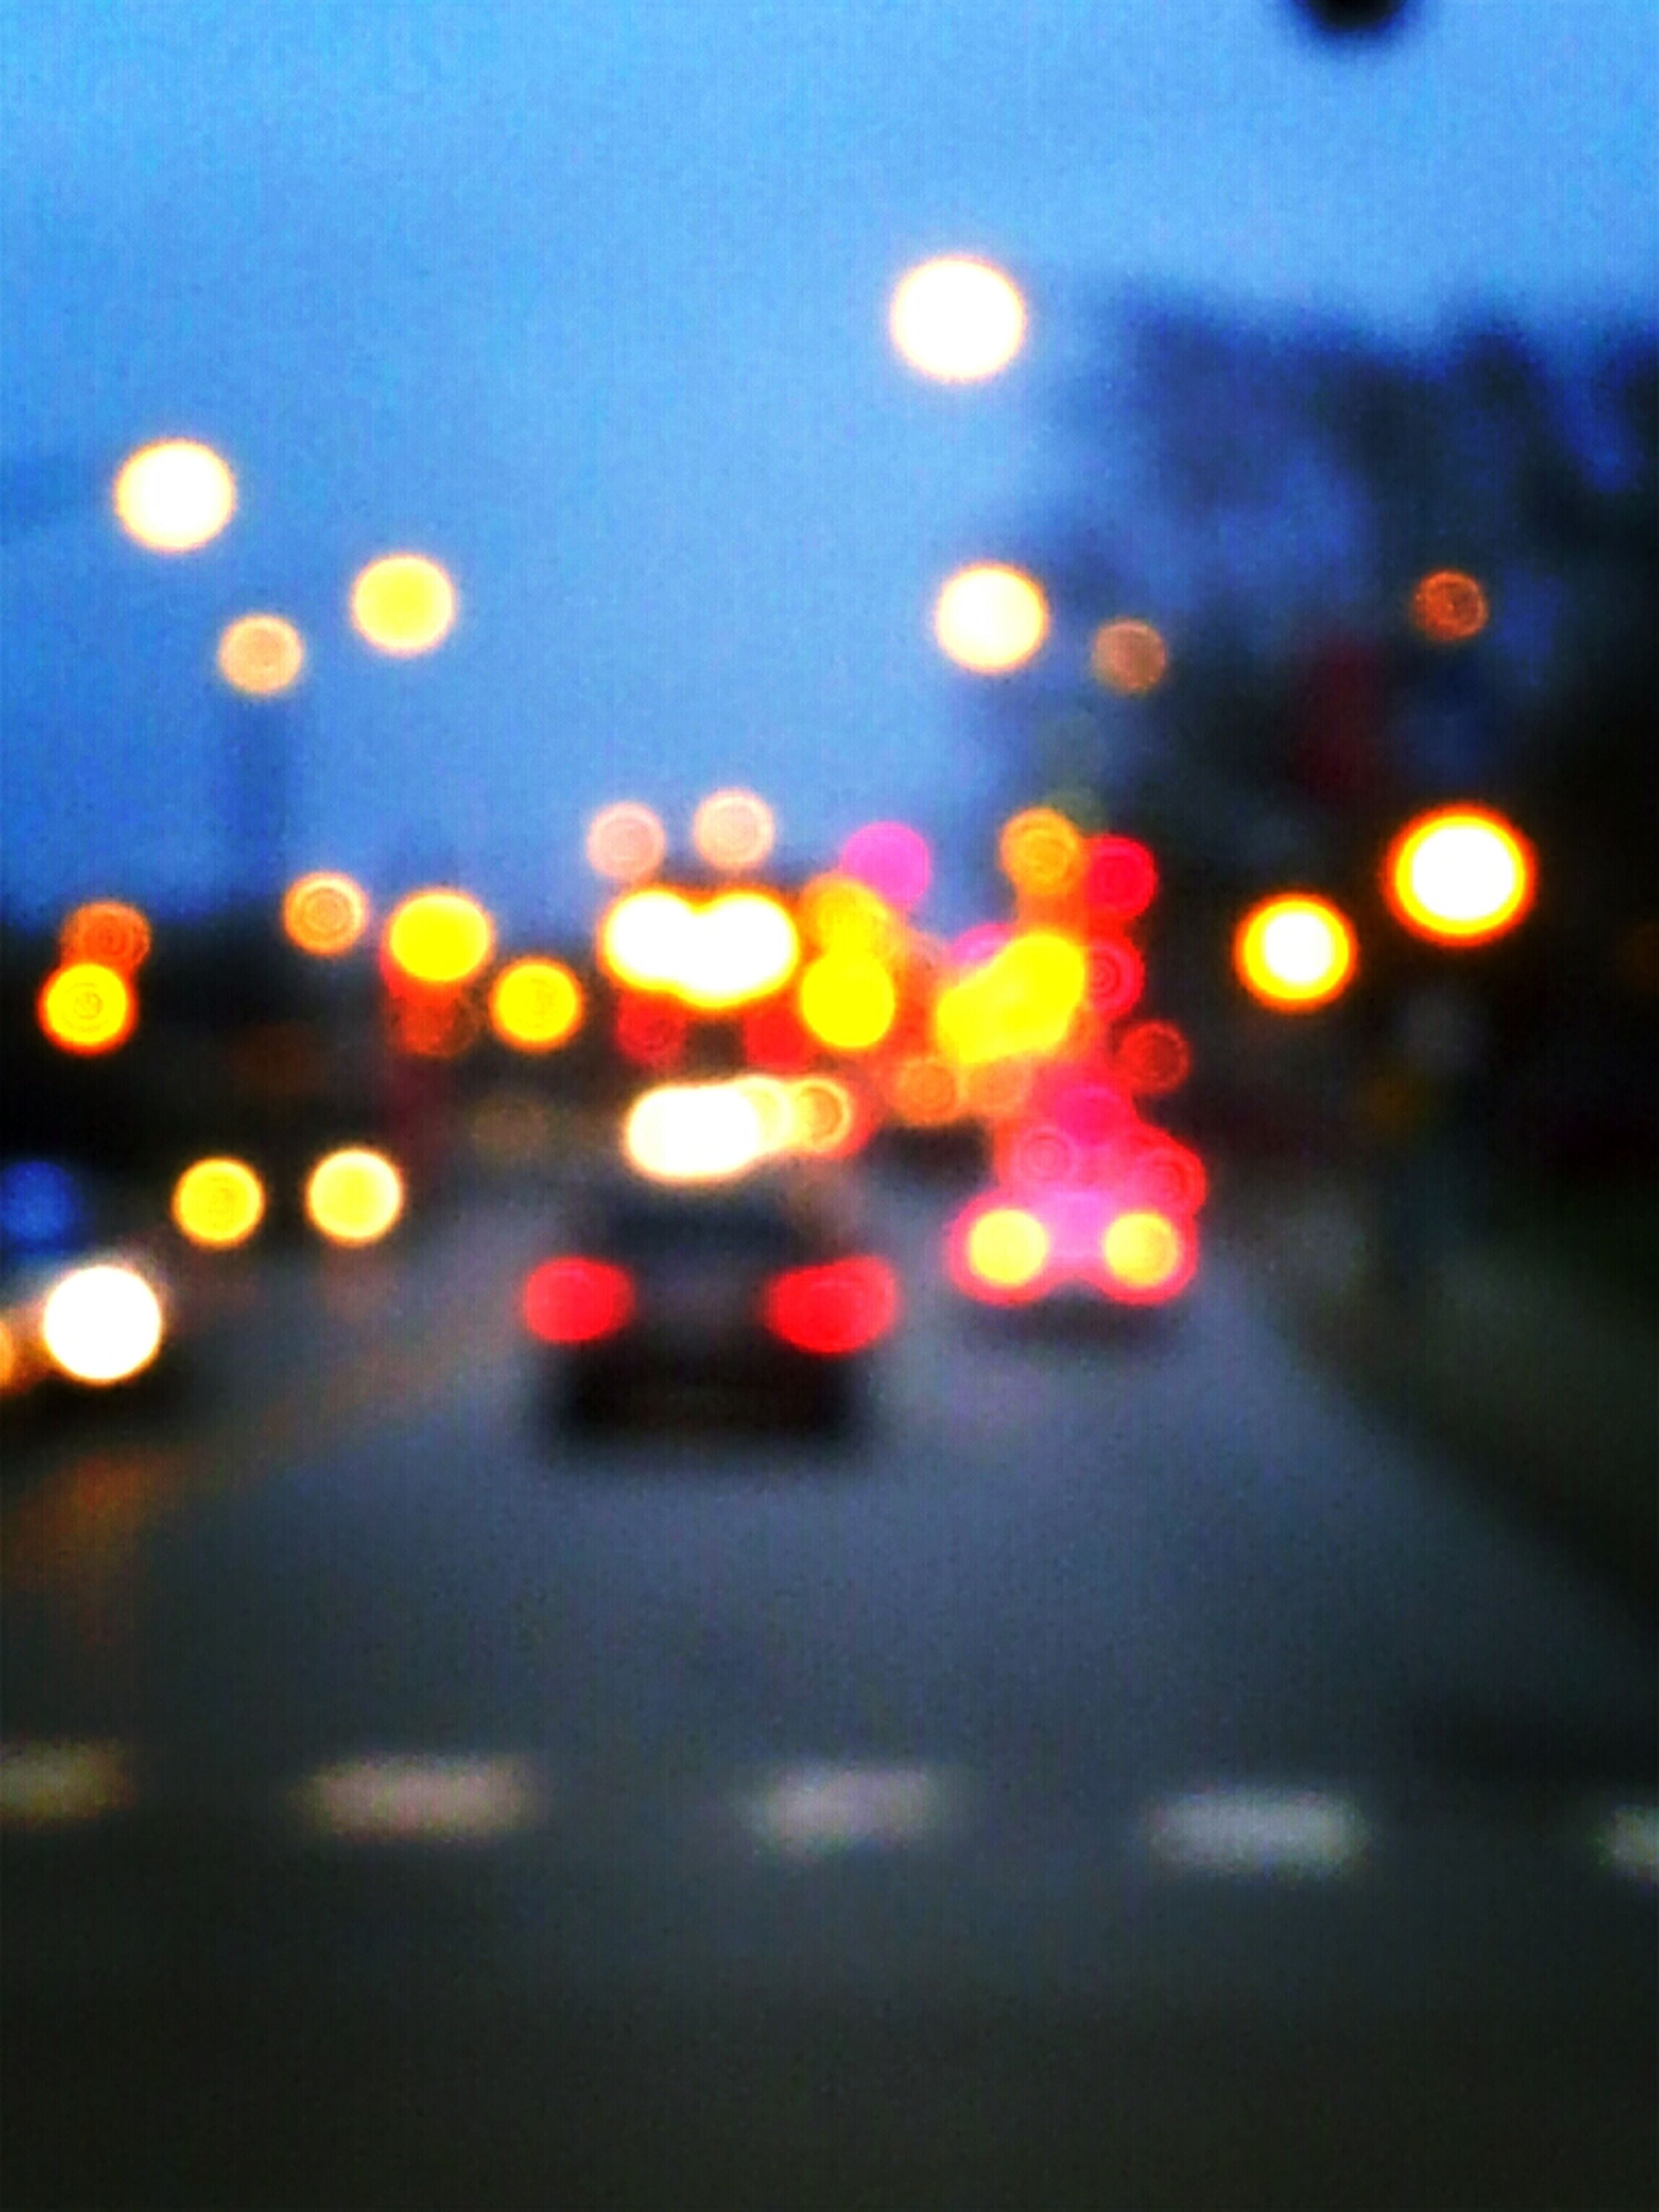 illuminated, night, defocused, transportation, multi colored, road, street, car, light - natural phenomenon, city, lens flare, blurred motion, no people, lighting equipment, glowing, motion, land vehicle, outdoors, circle, on the move